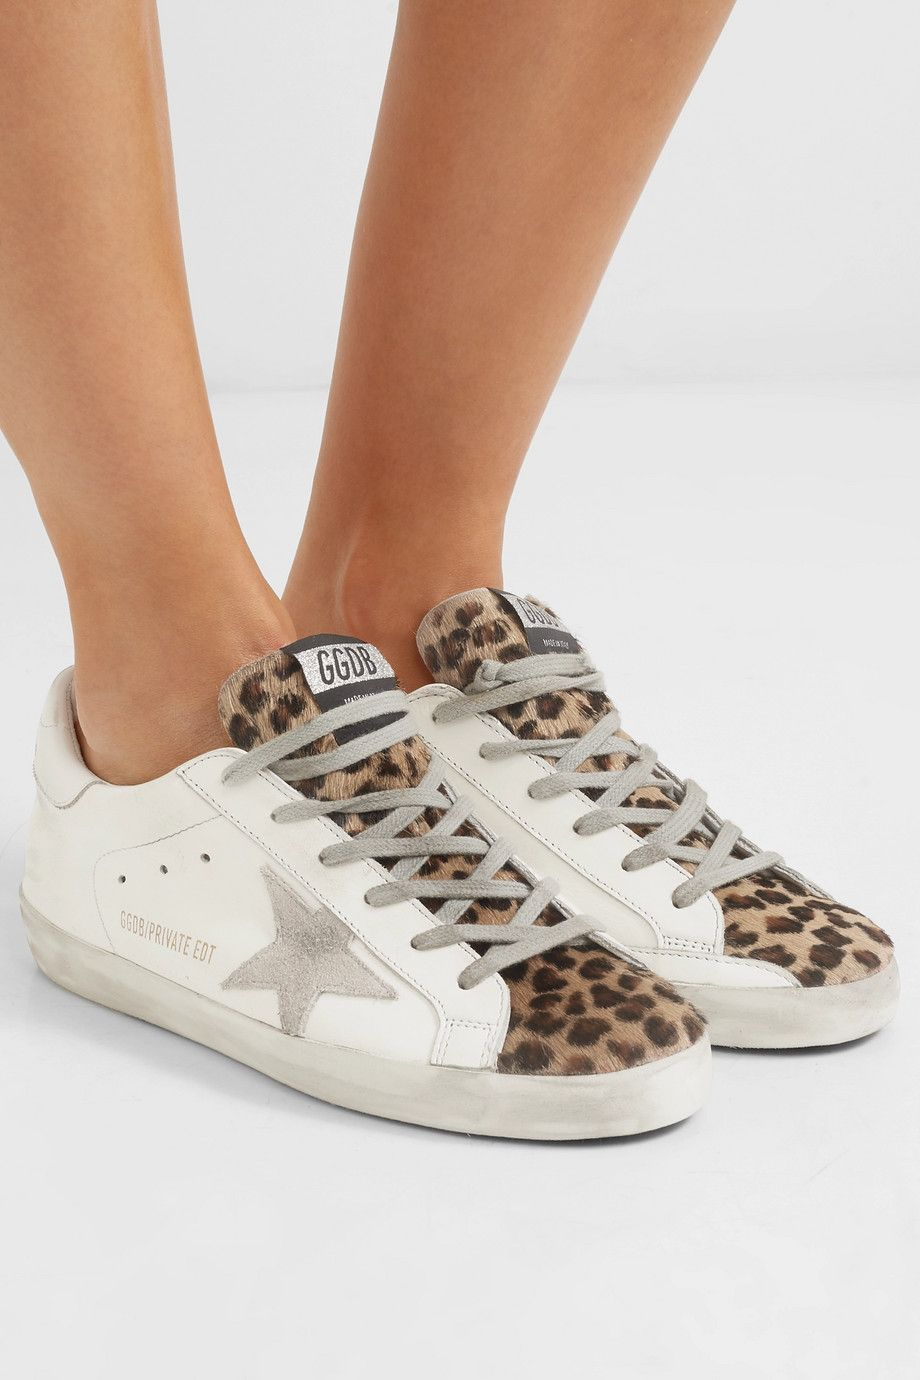 Sneakers, Golden goose shoes, Leather \u0026